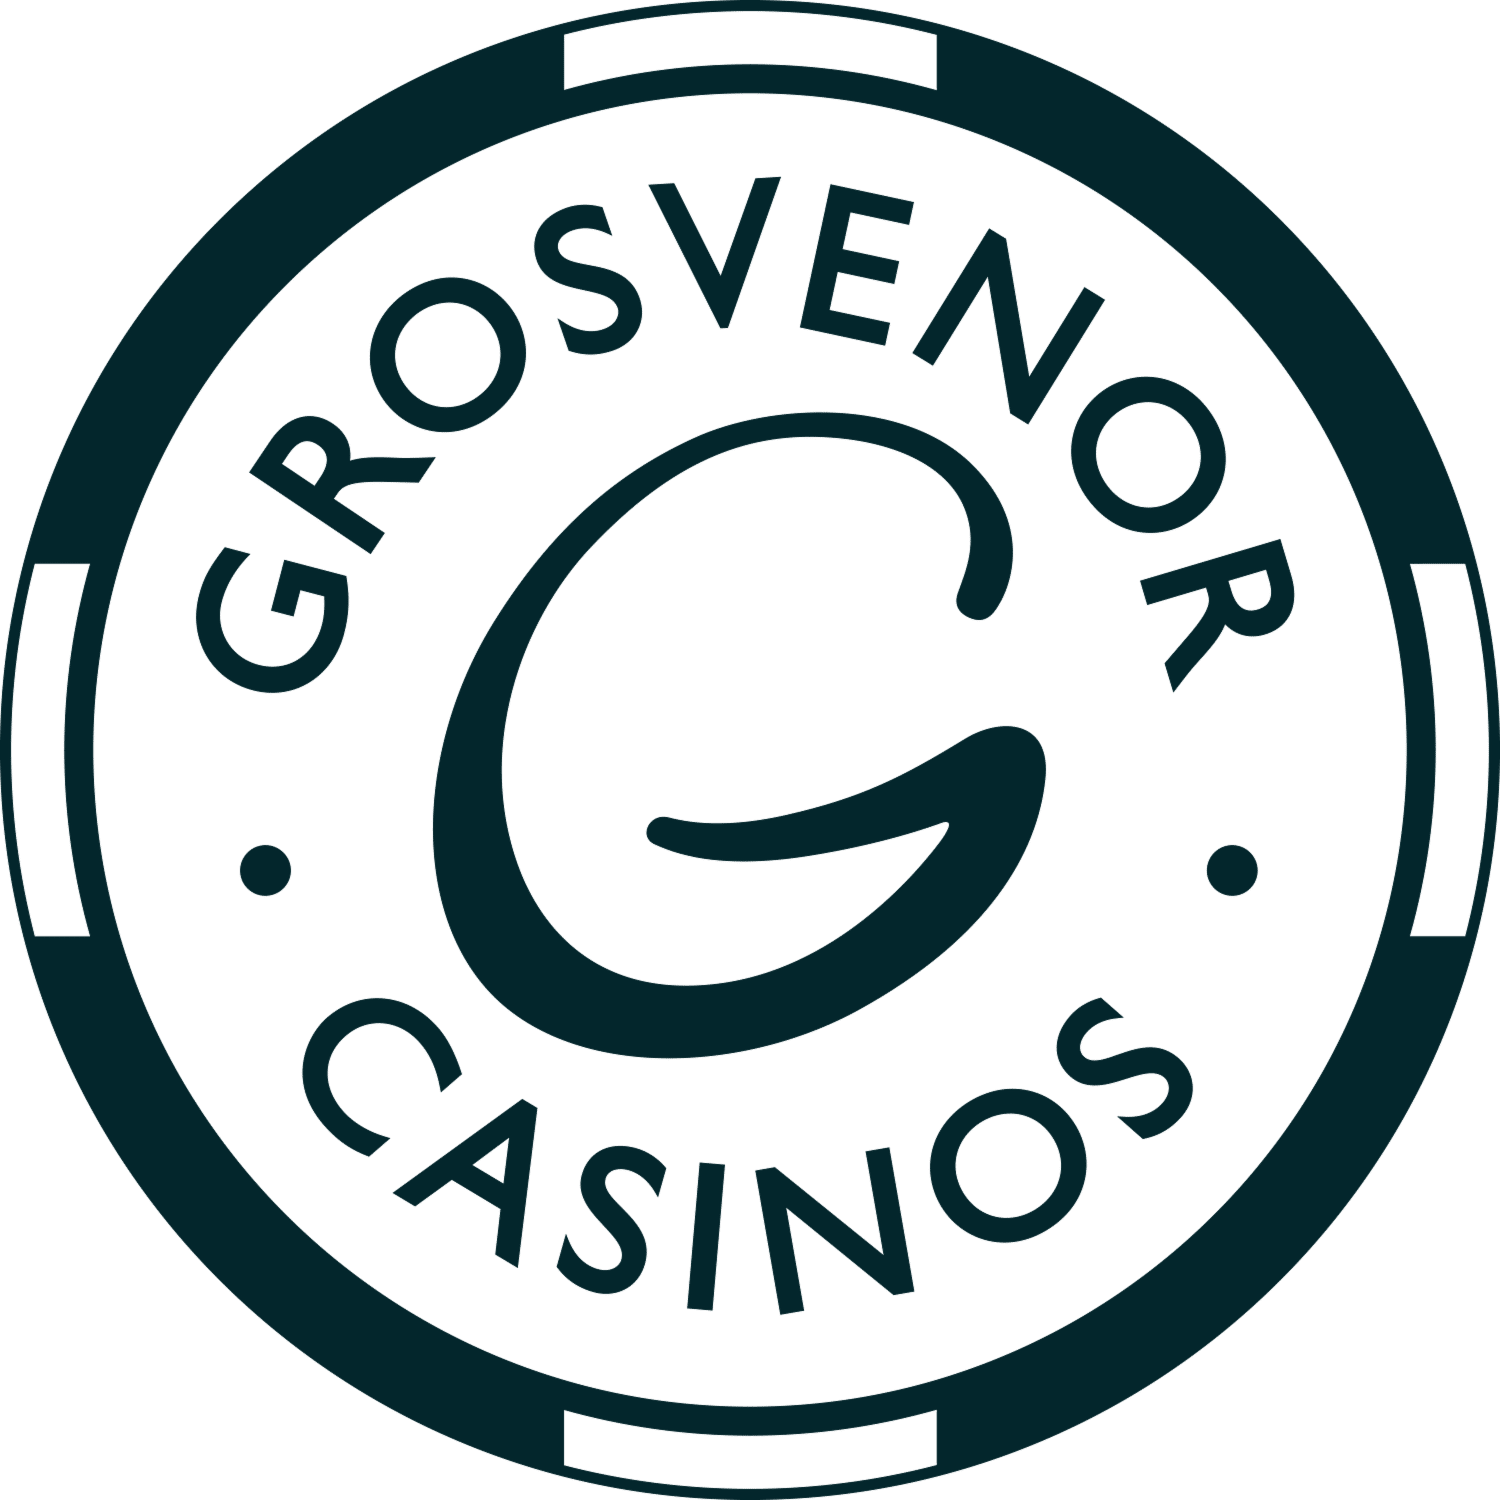 Grosvernor Casino Logo Transparent